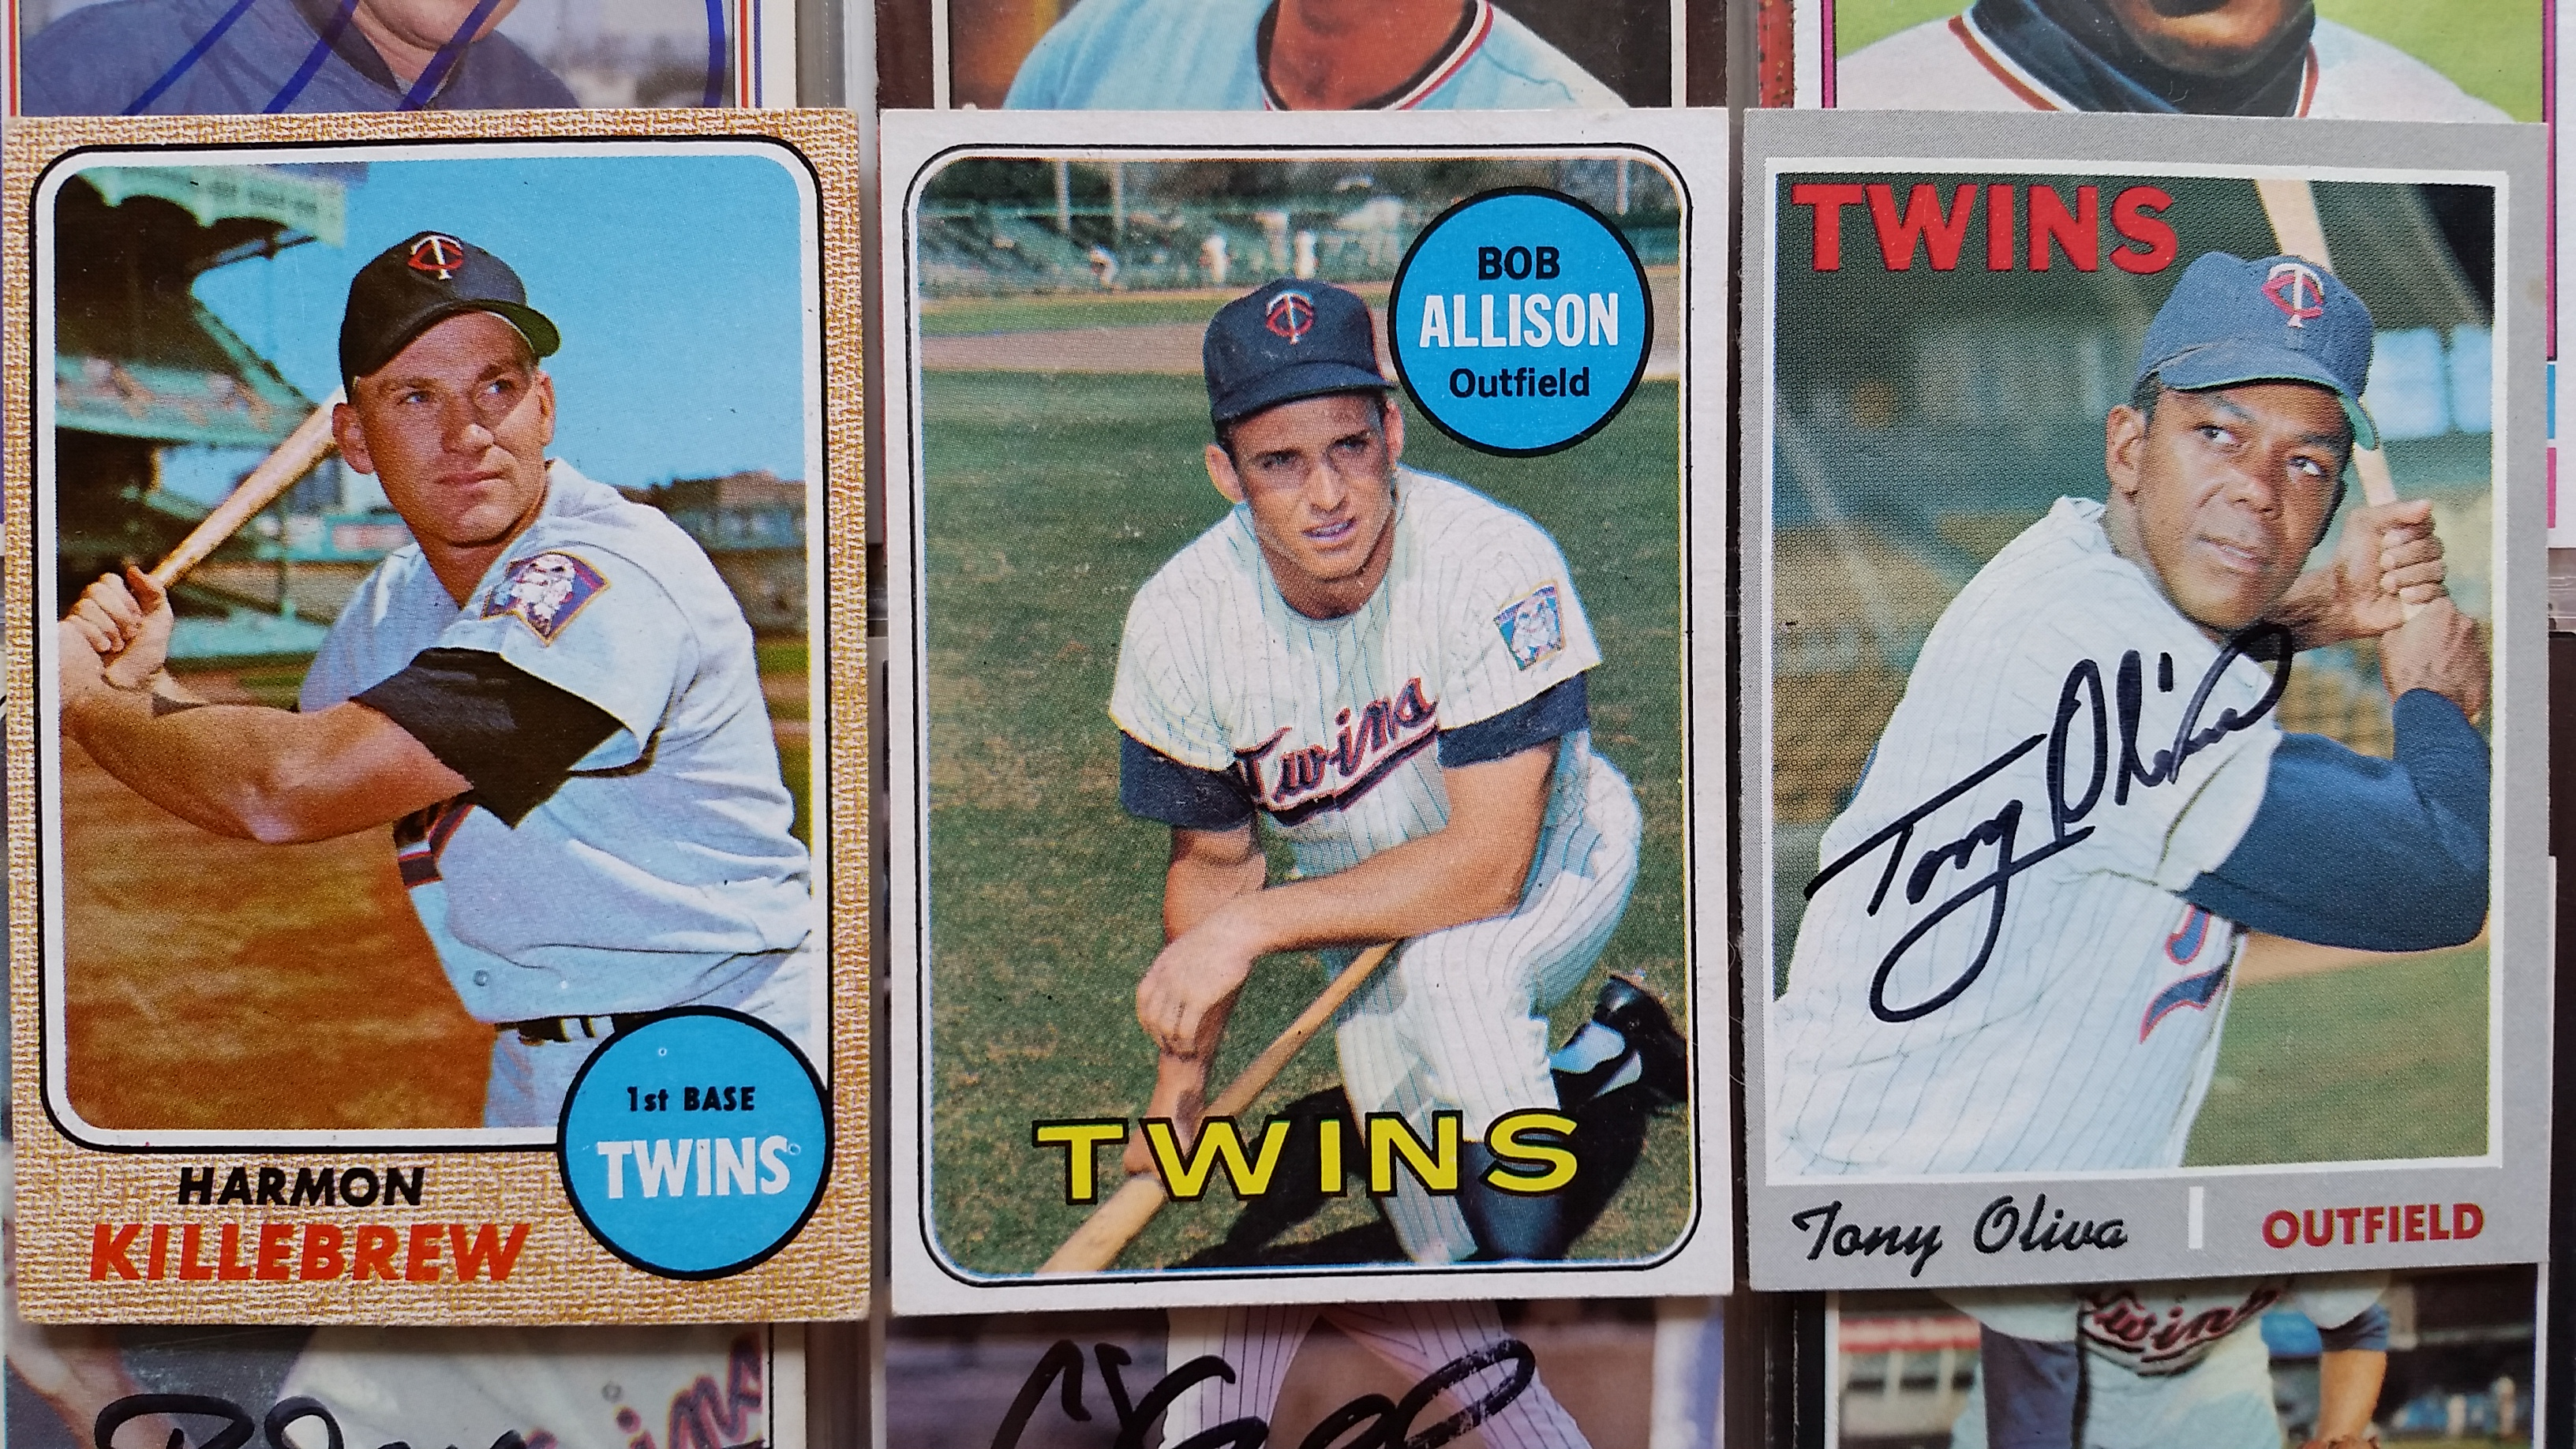 The Twins Almanac for May 2nd